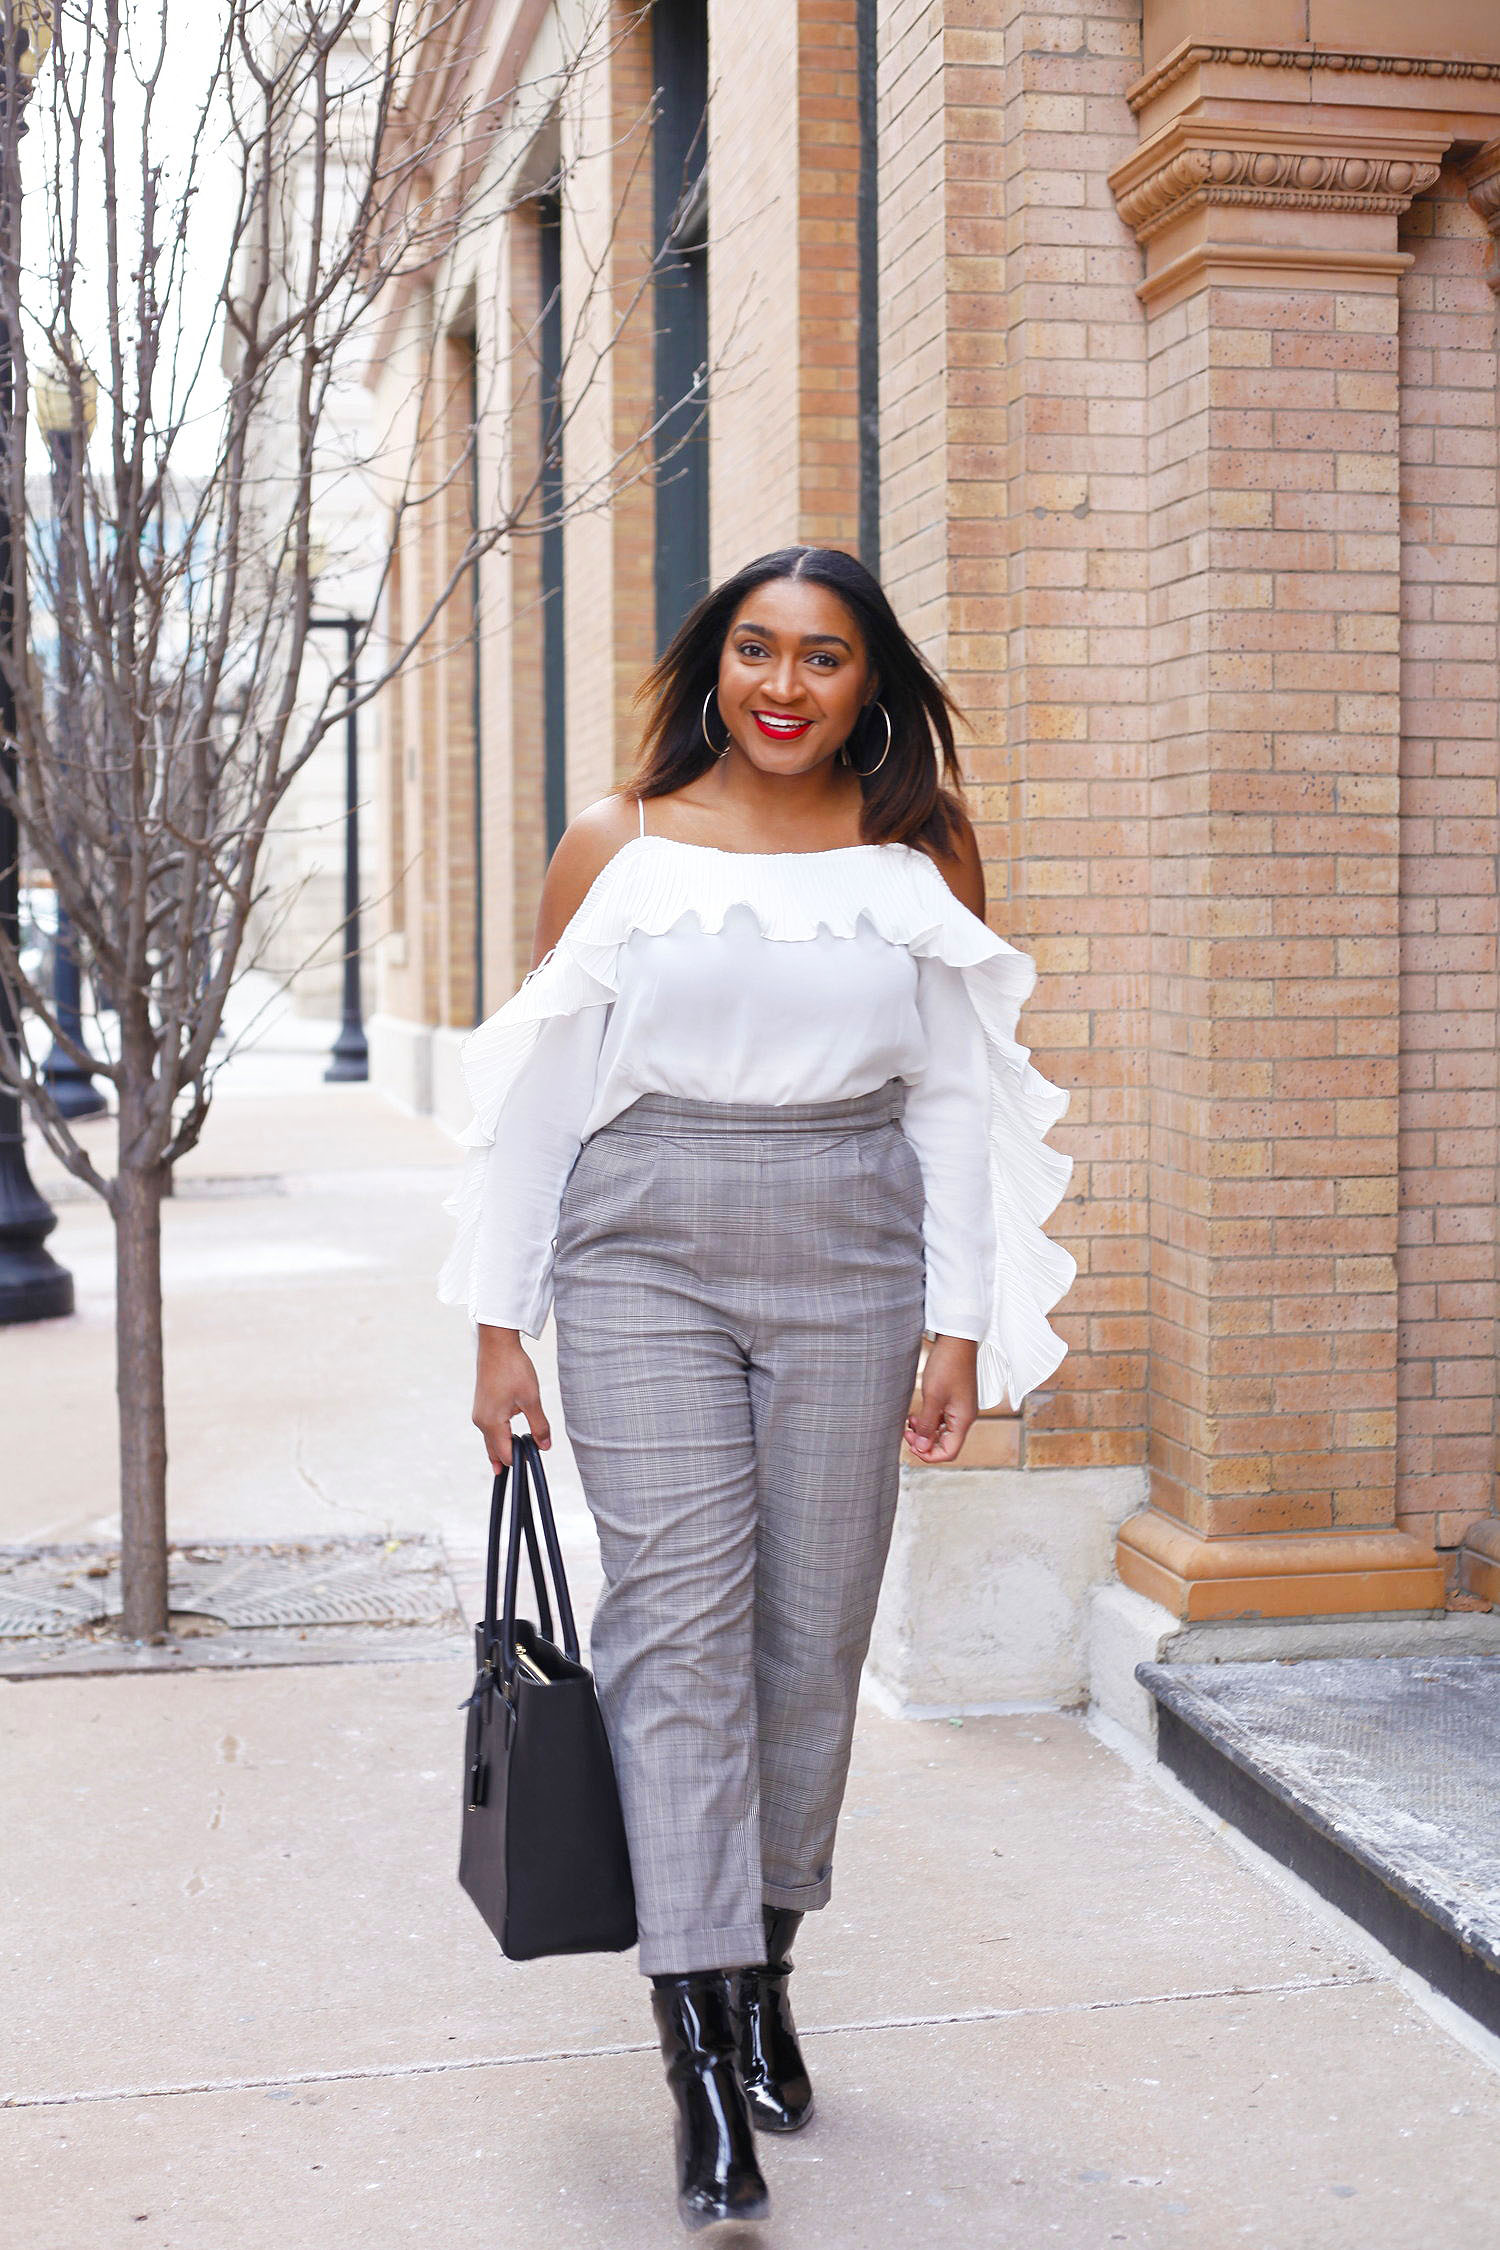 How to style high waisted pants